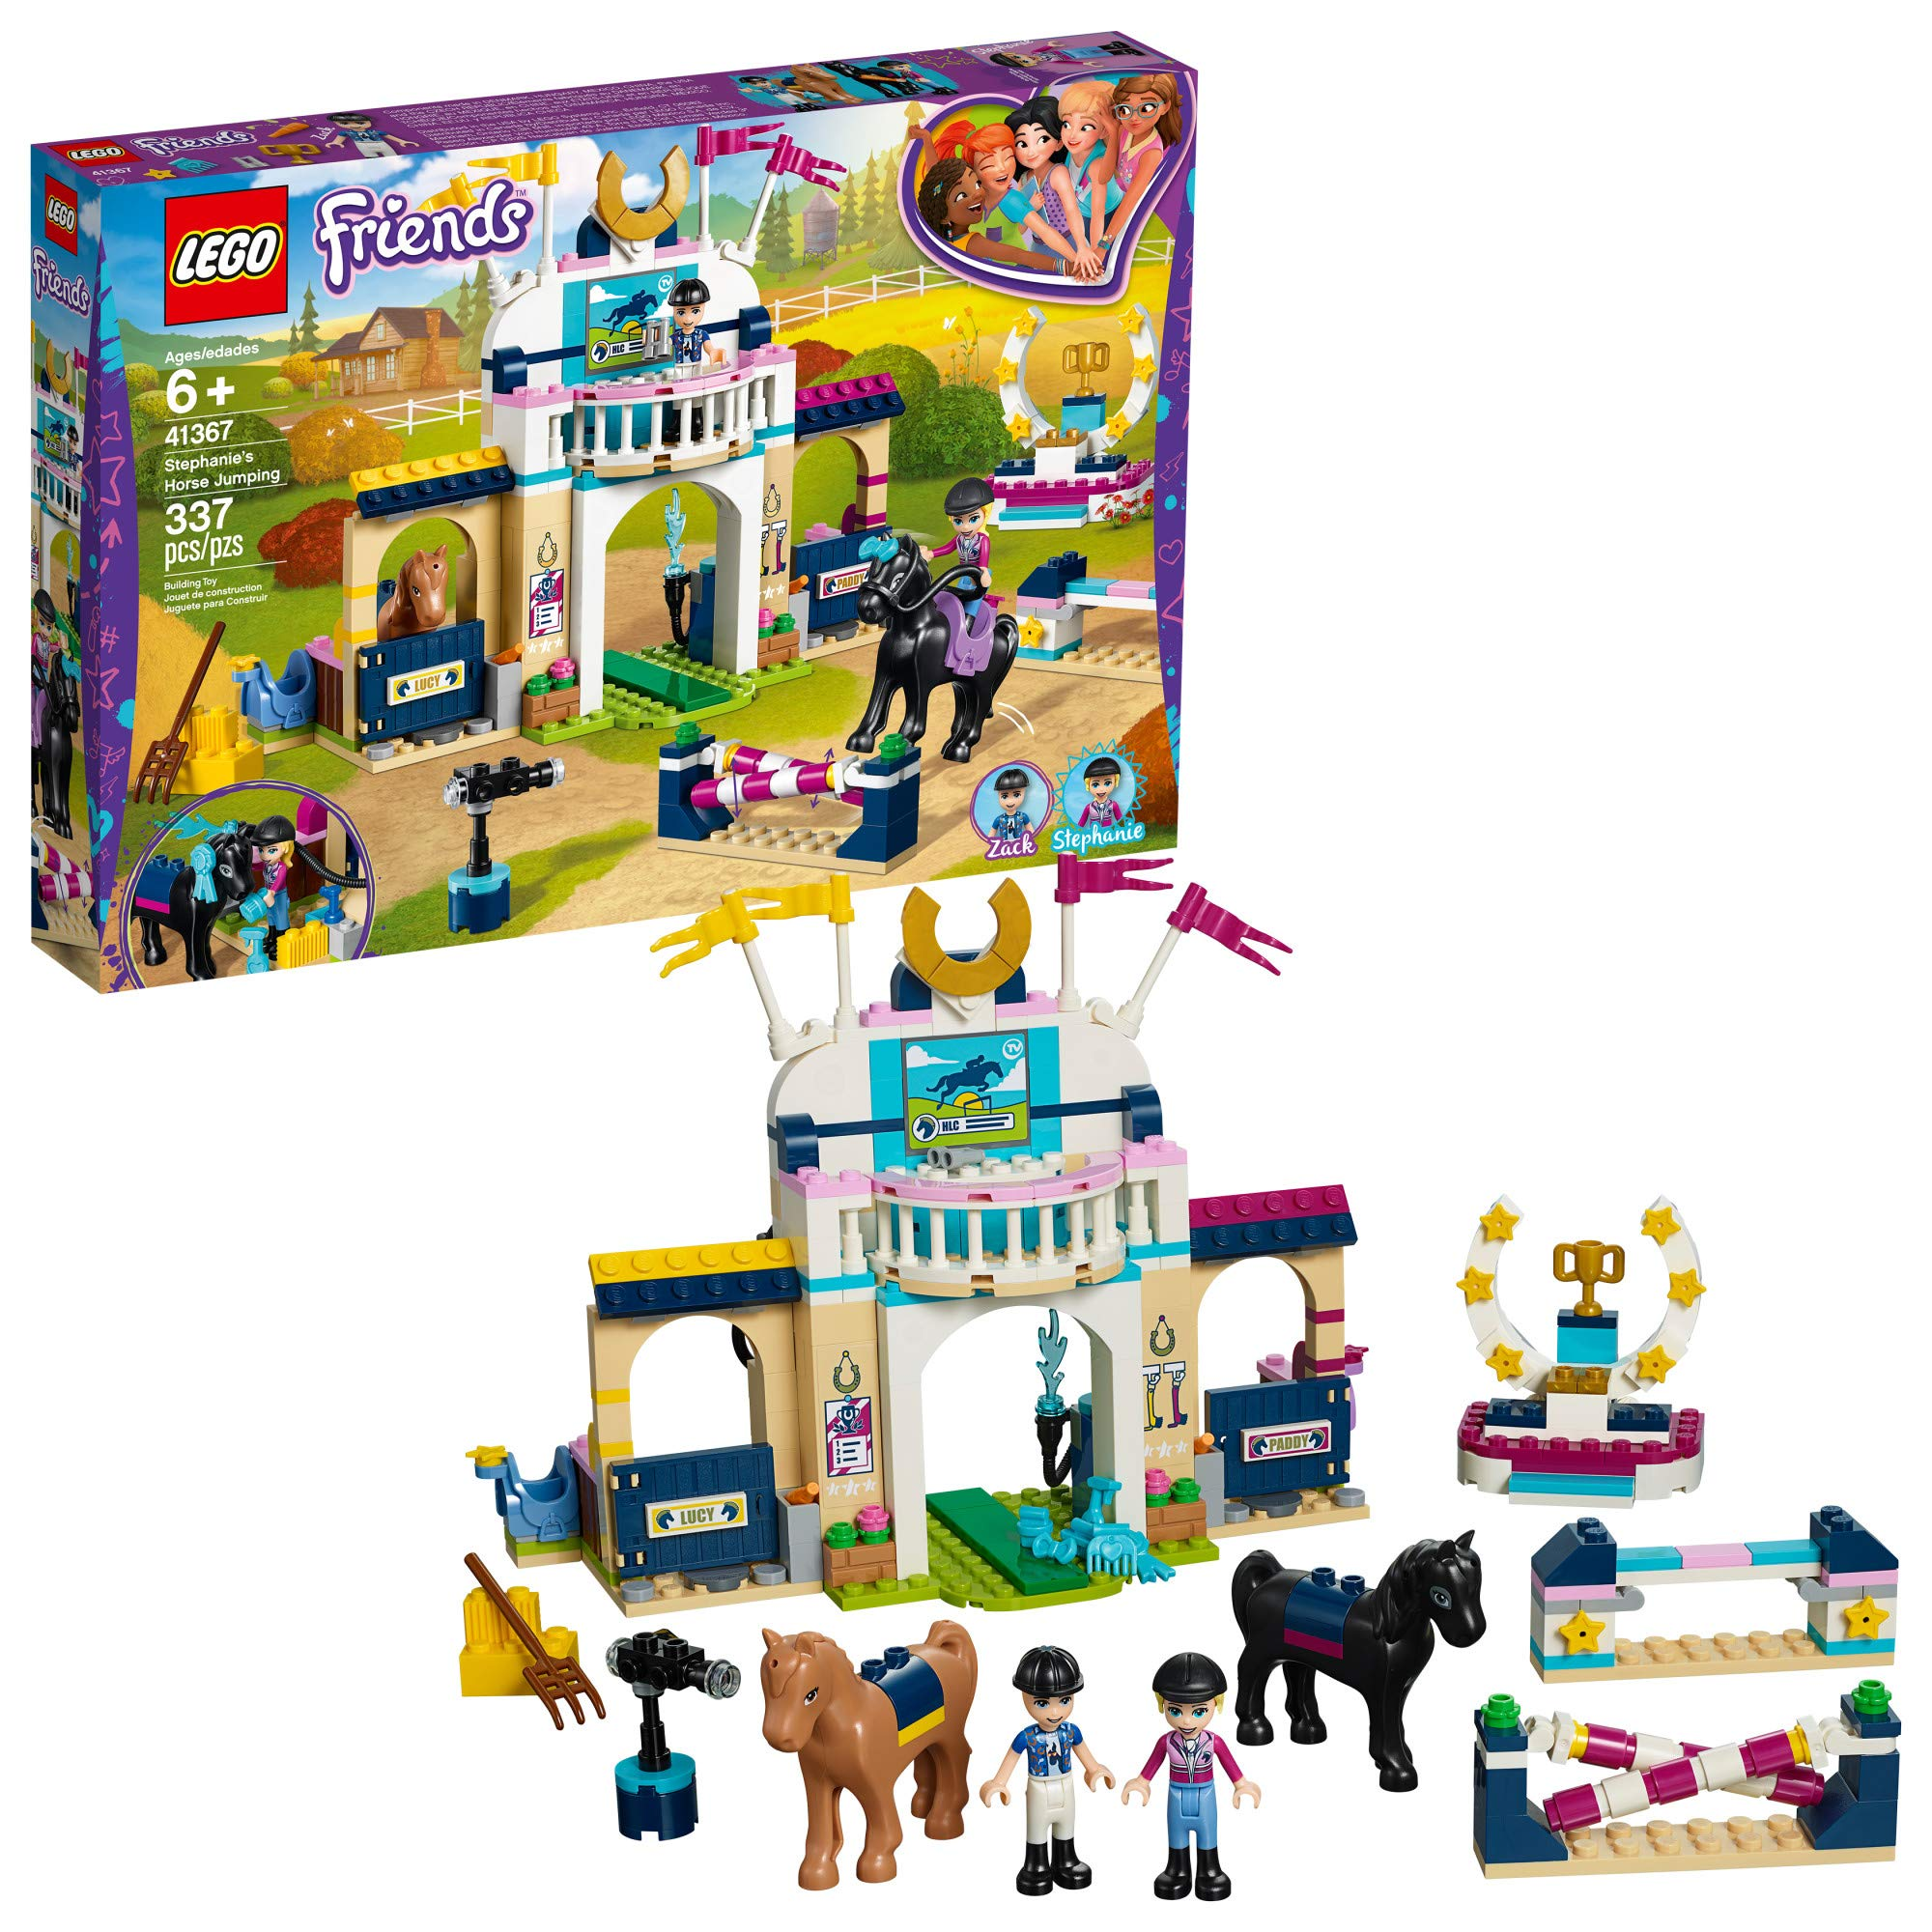 LEGO Friends Stephanie's Horse Jumping 41367 Kit de construcción (337 piezas)